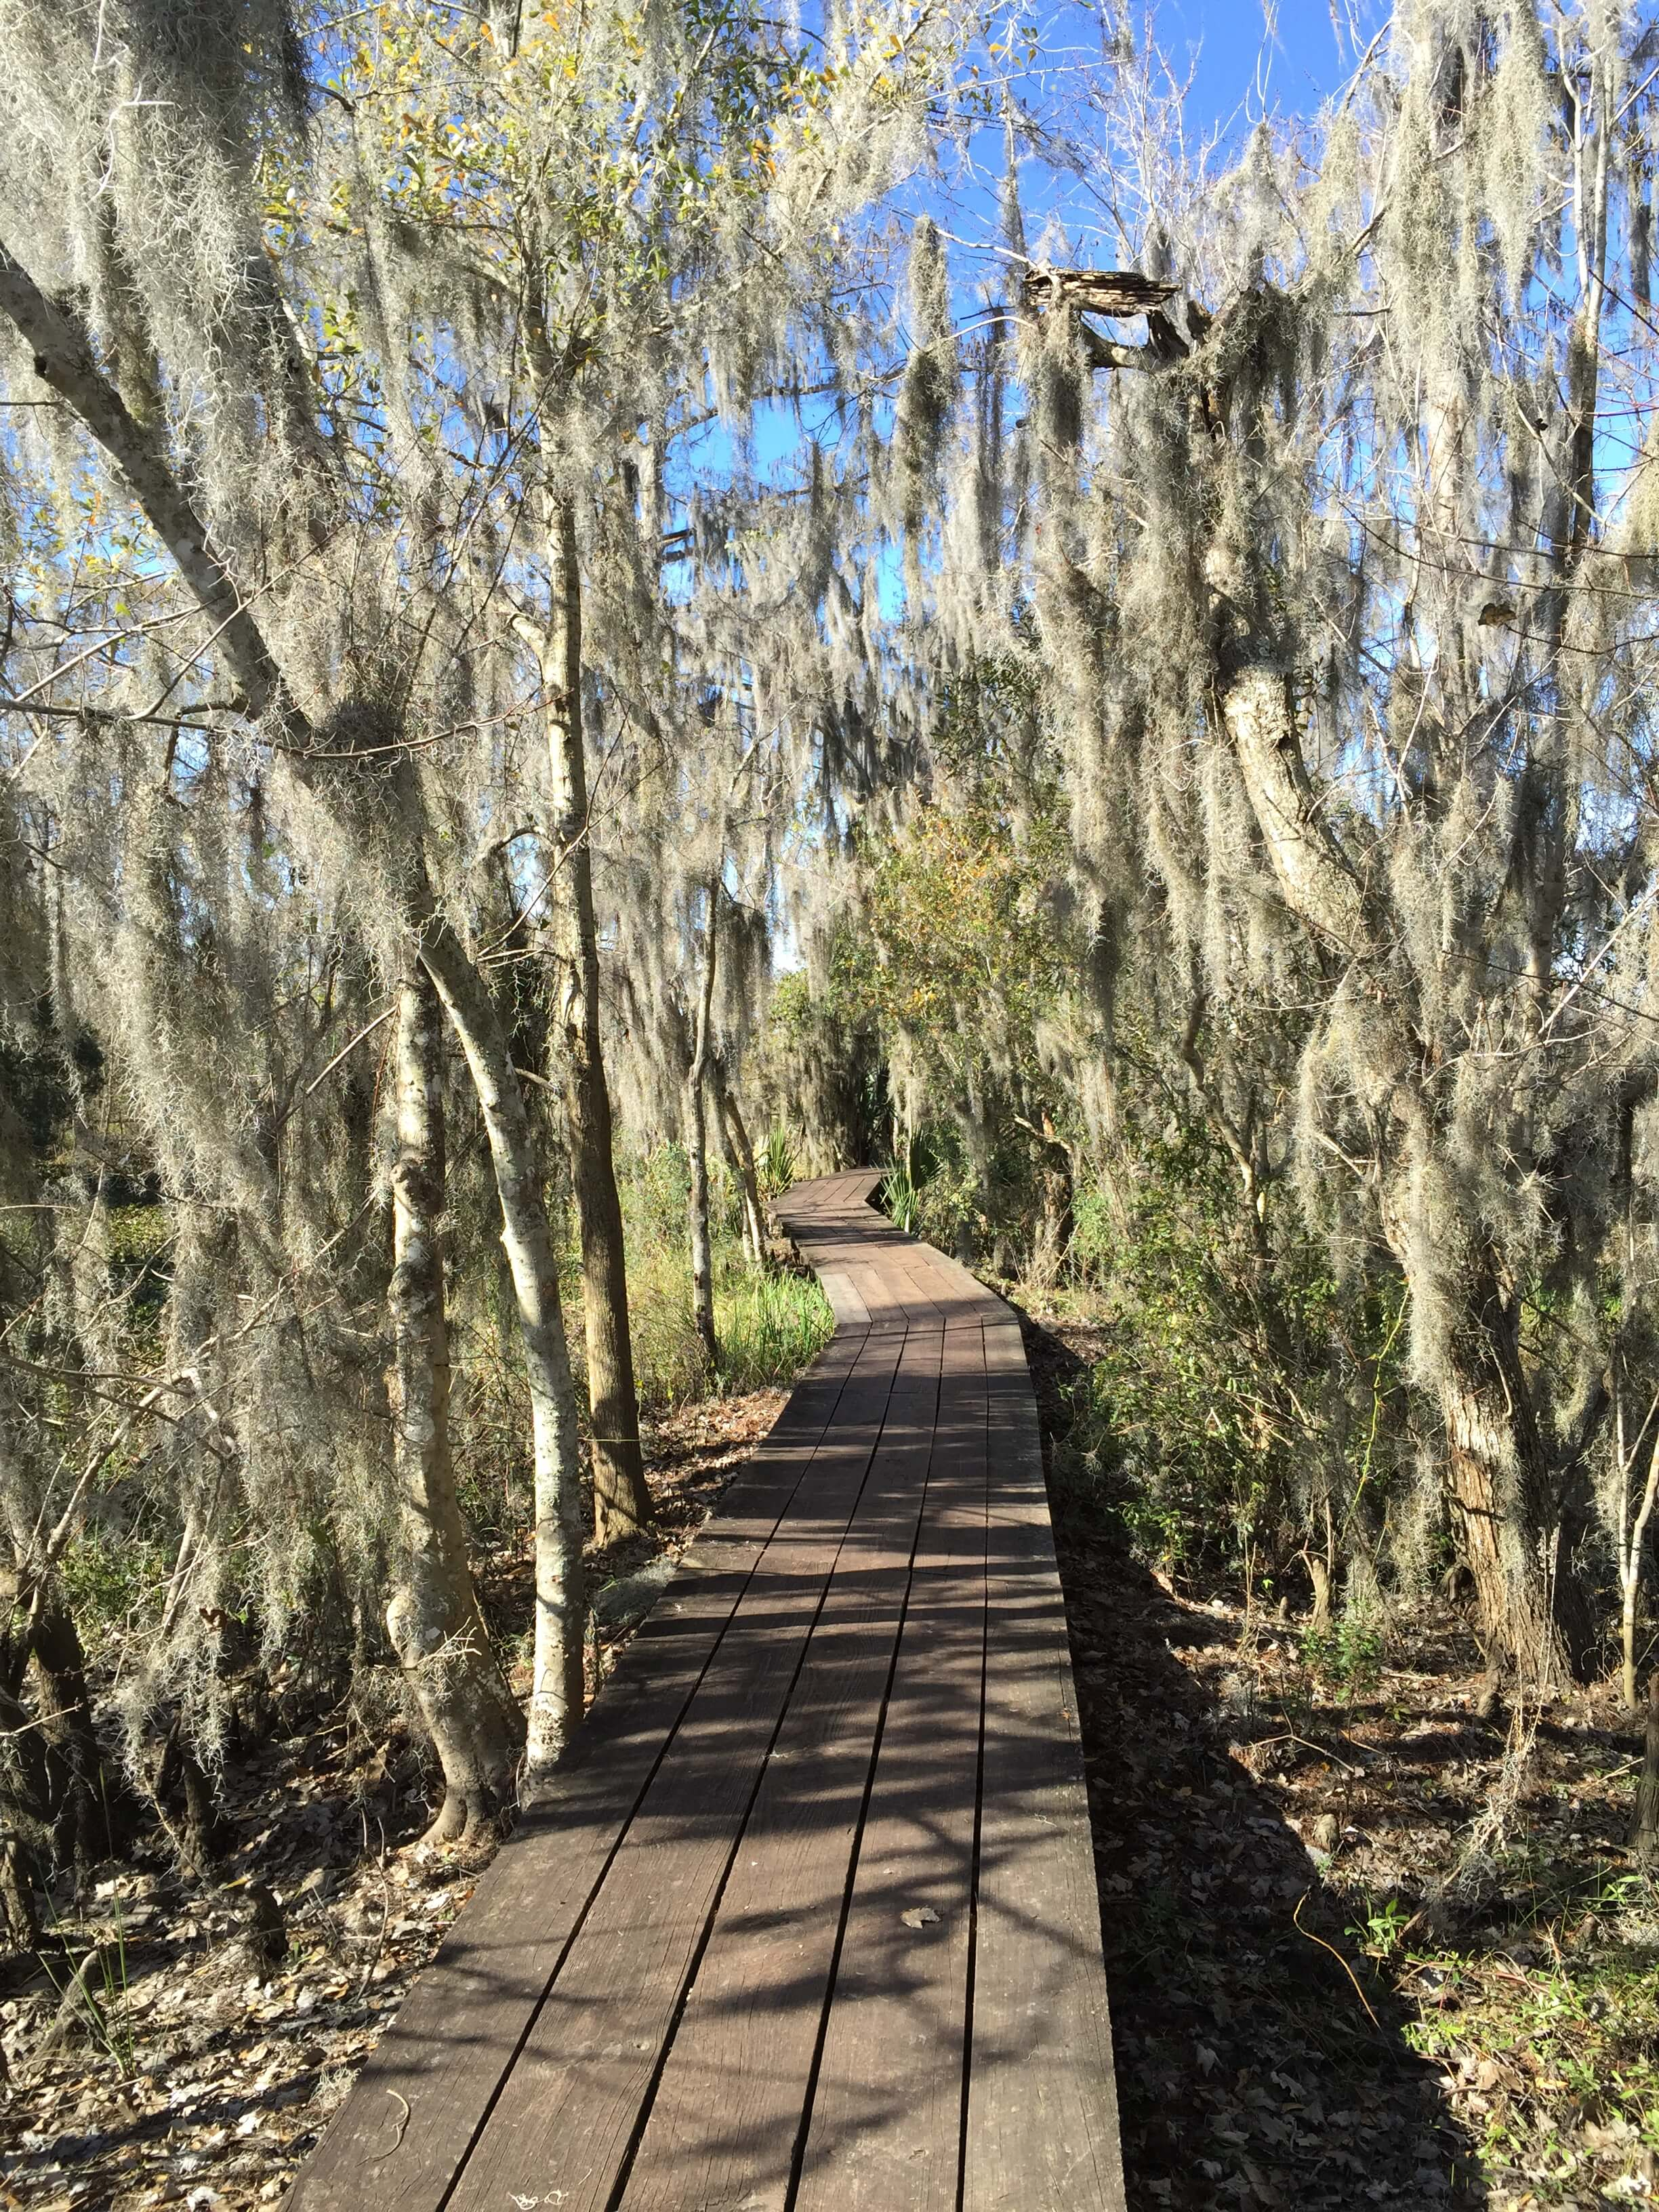 Swamp Boardwalk Hike Near New Orleans